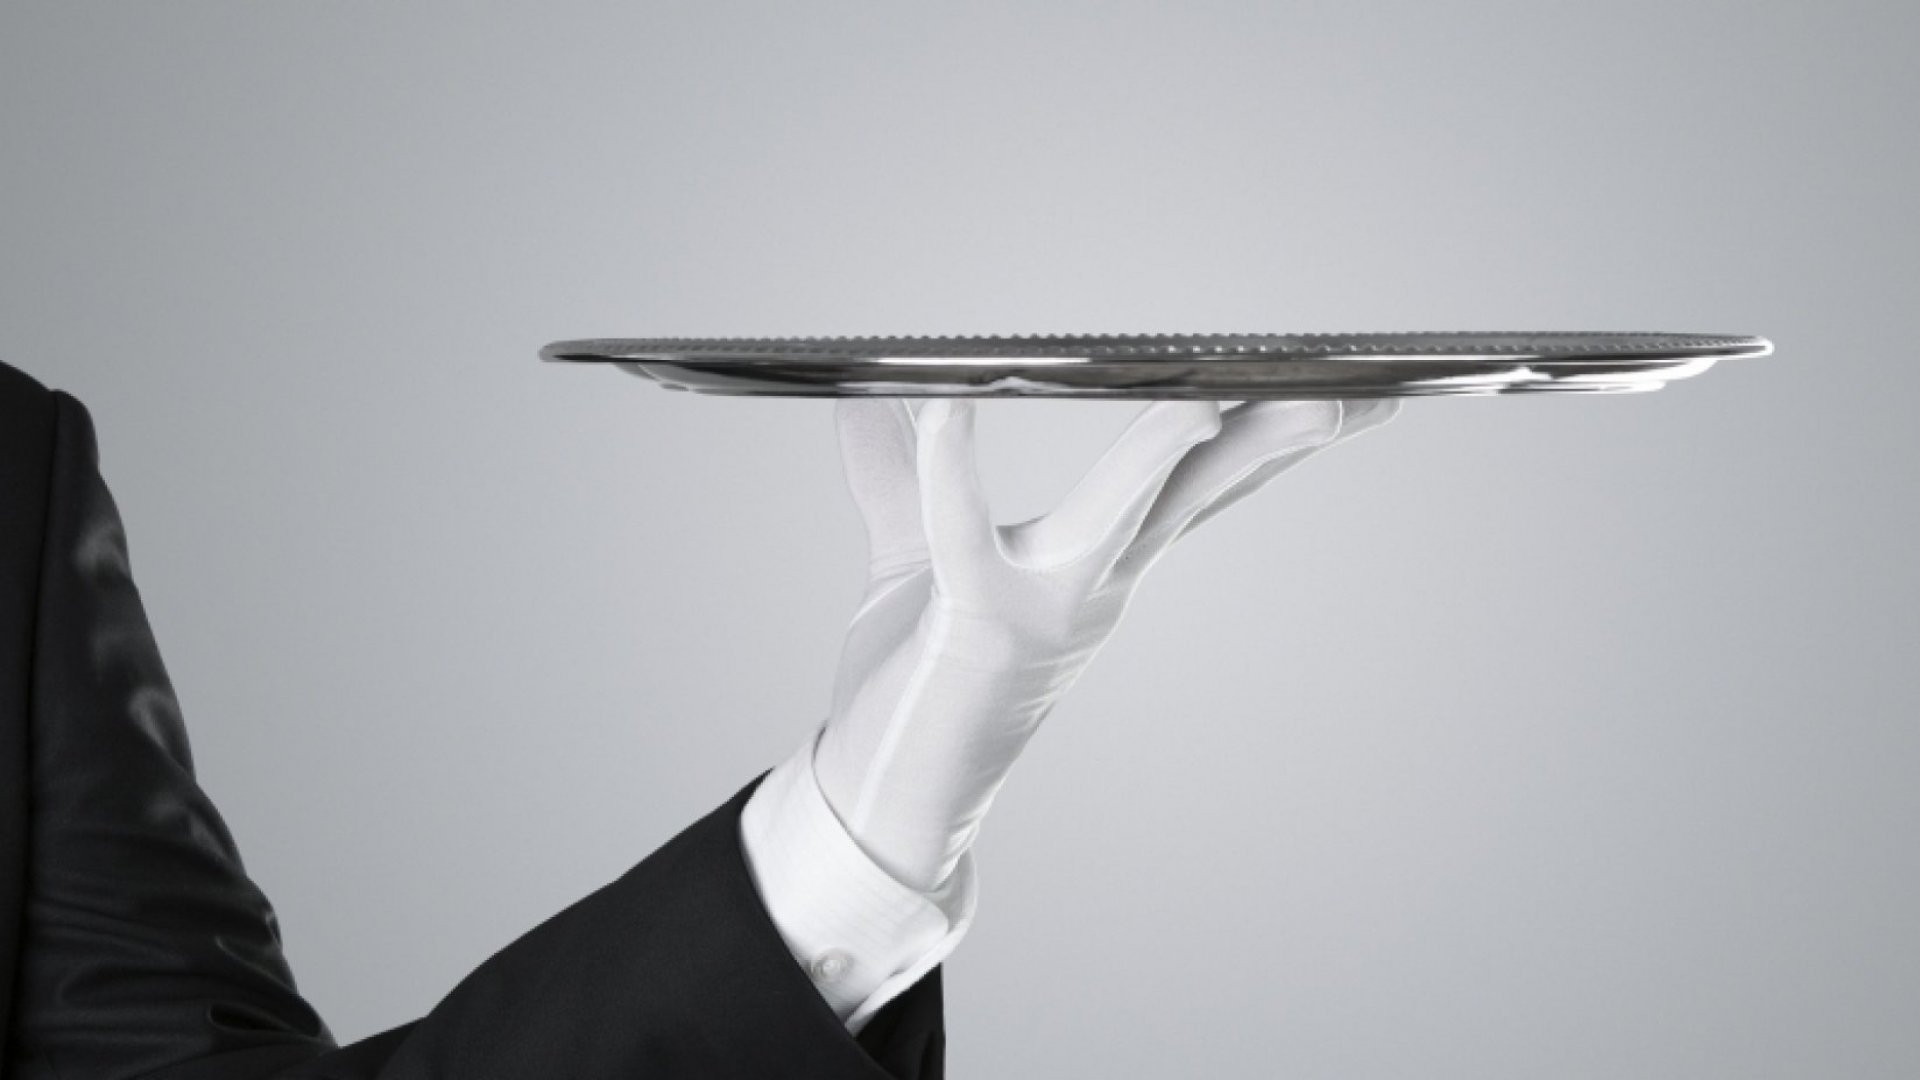 The 10 Things You Should Never Tolerate In Restaurants